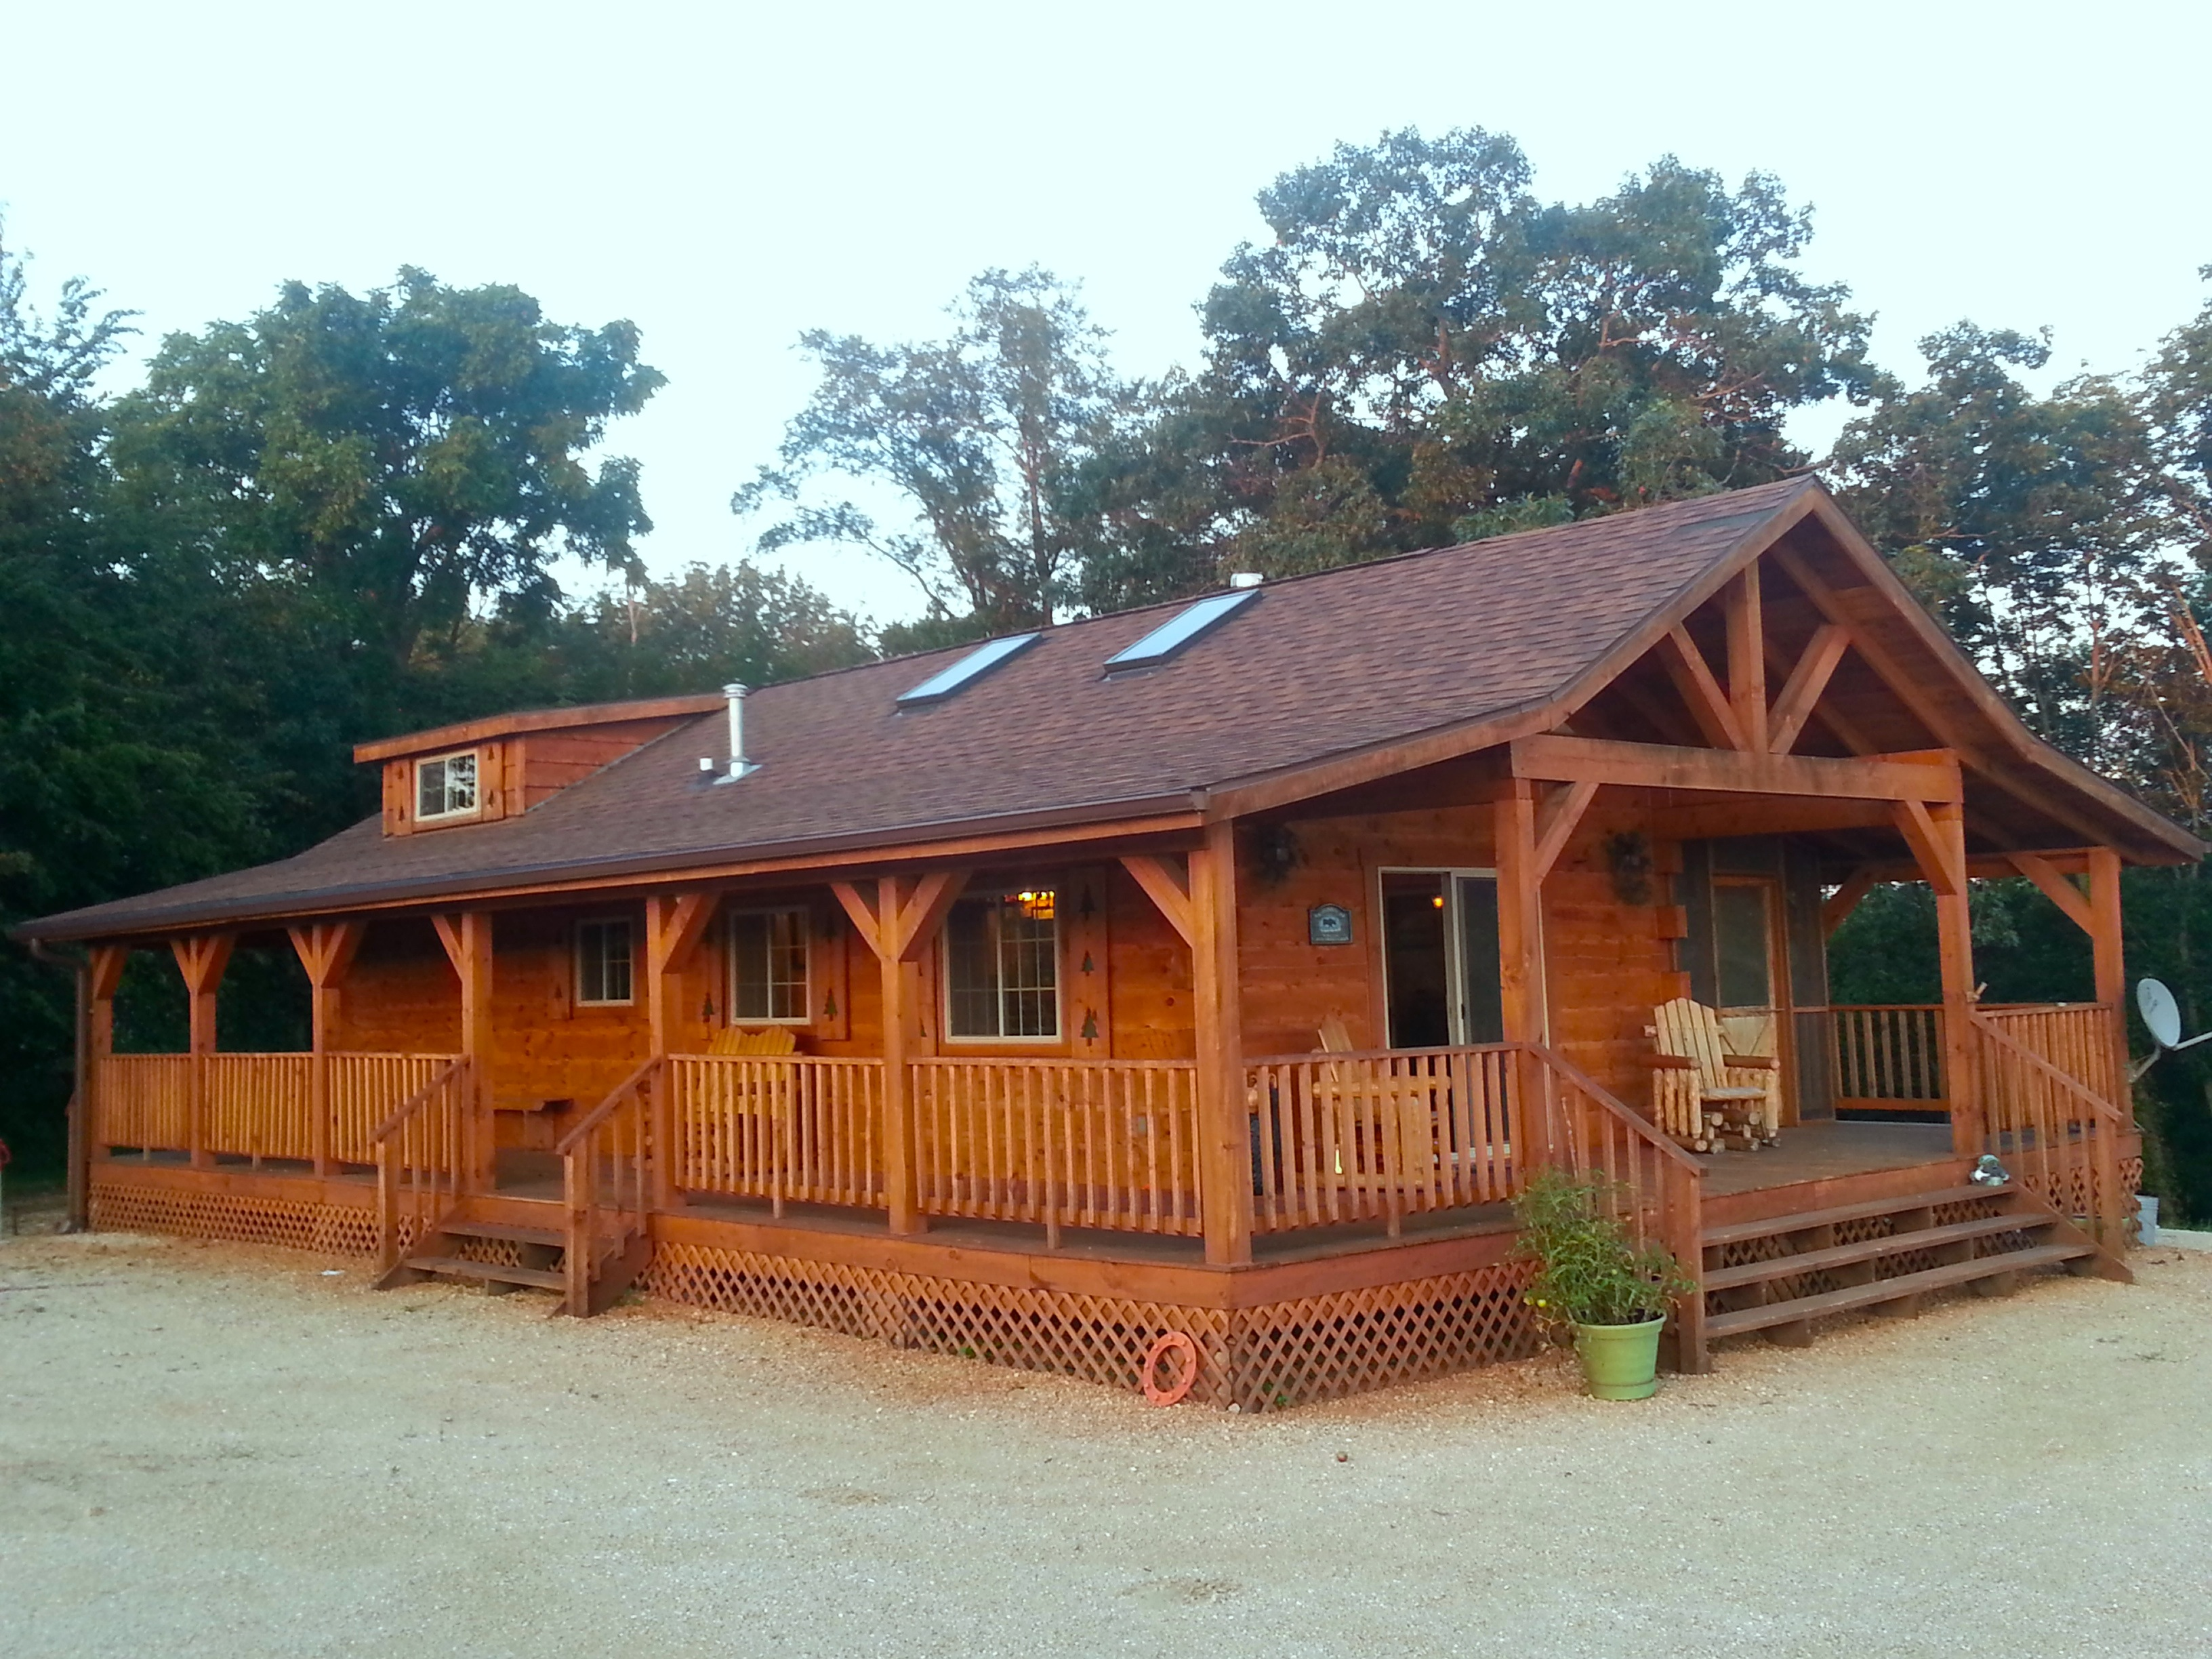 Burr Oak Log Cabin For Rent in Iowa | Iowa Cabin Rentals